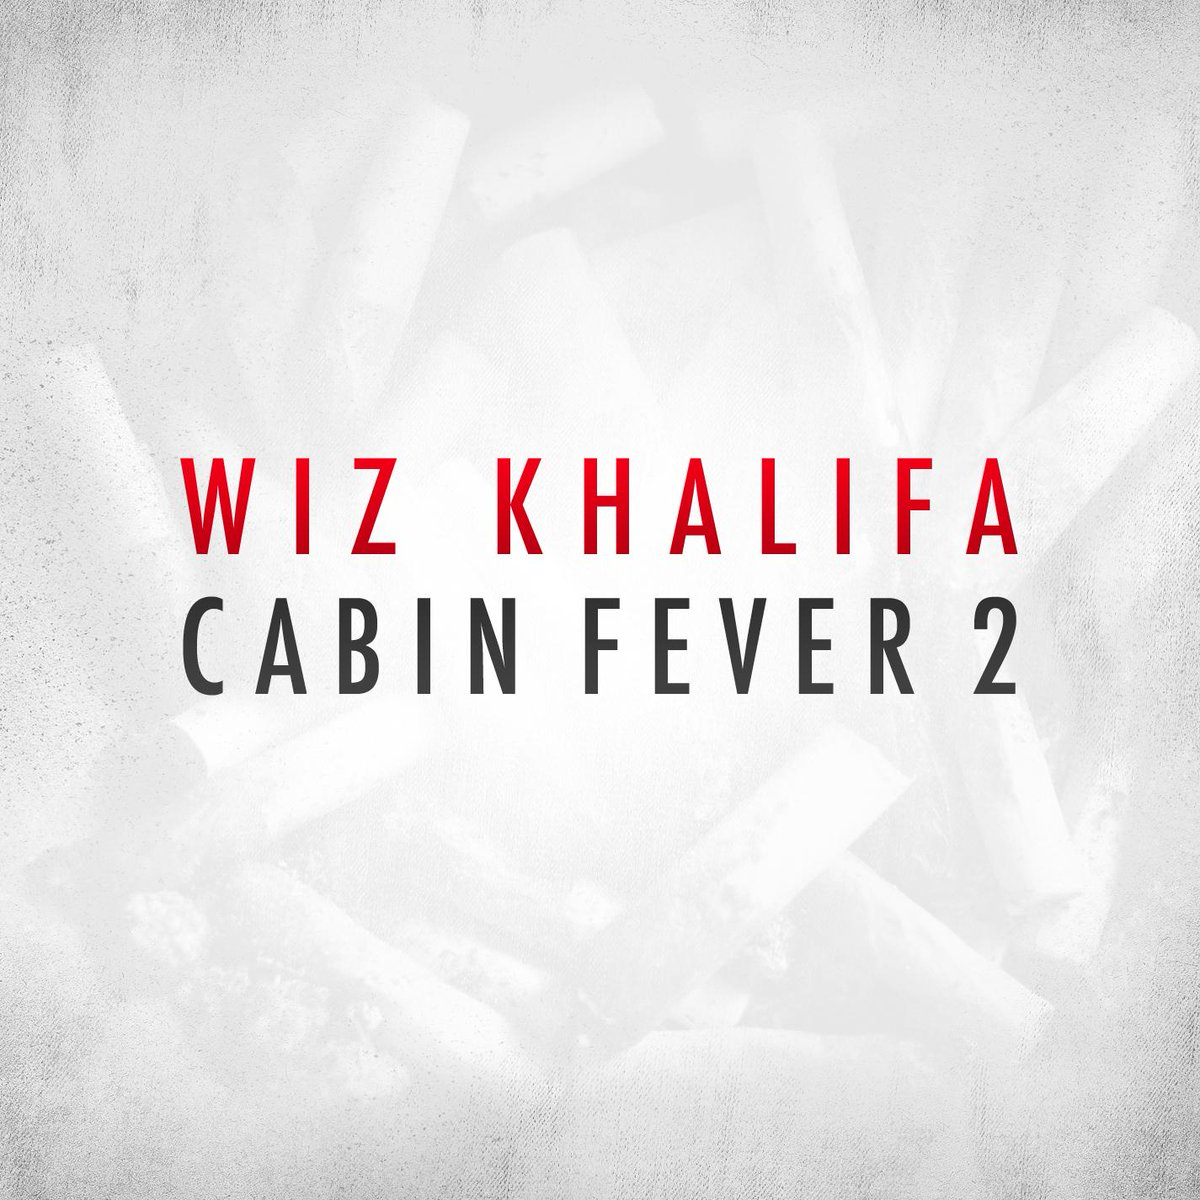 #CabinFever2 now available on all platforms‼️ smarturl.it/WizCabinFever2